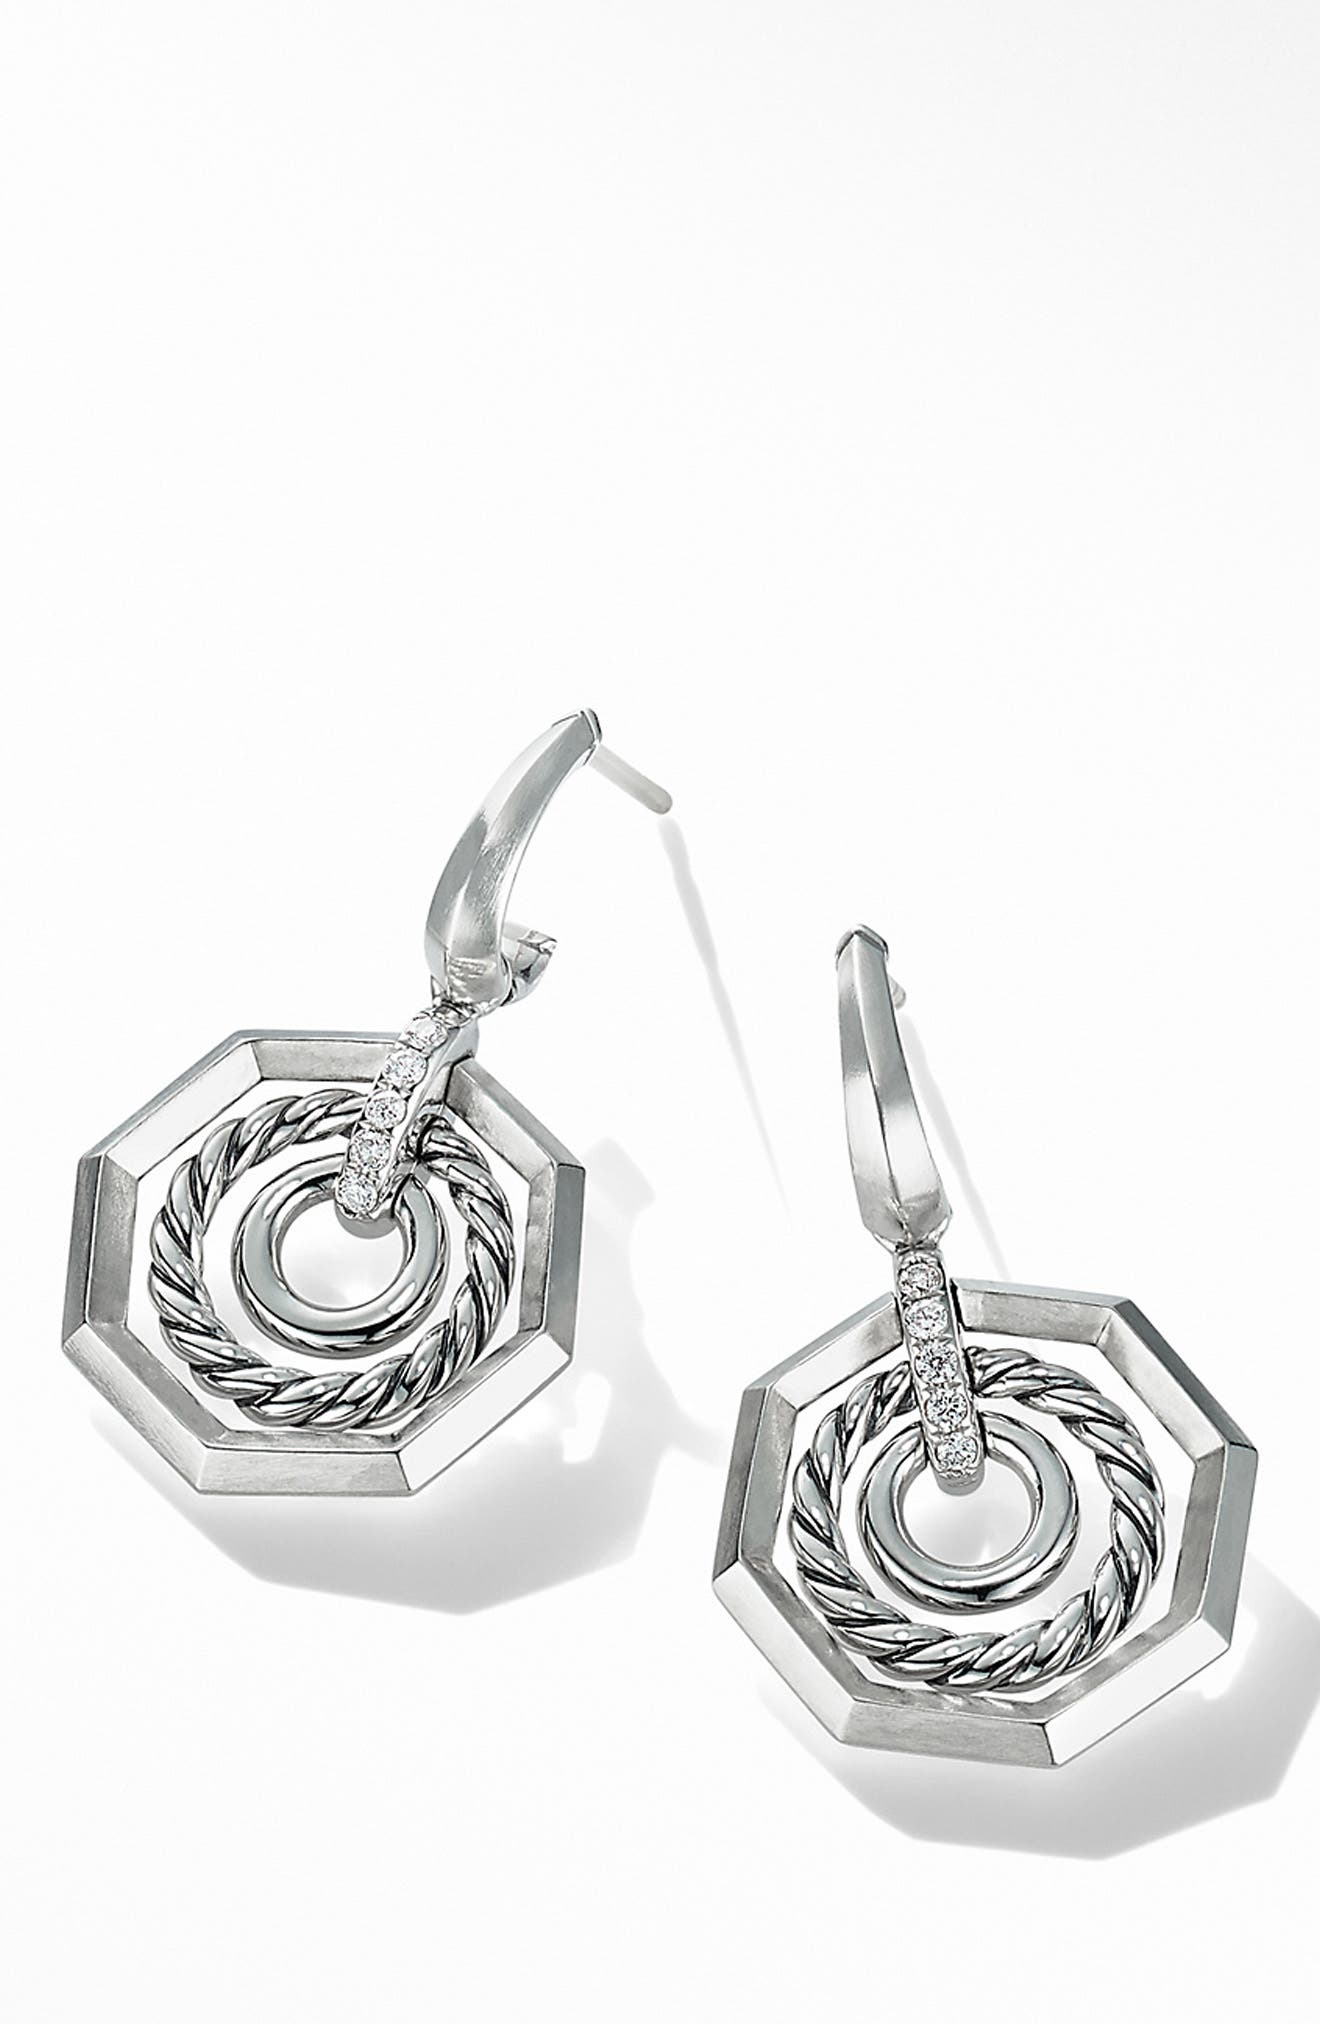 Stax Drop Earring with Diamonds,                             Alternate thumbnail 2, color,                             SILVER/ DIAMOND